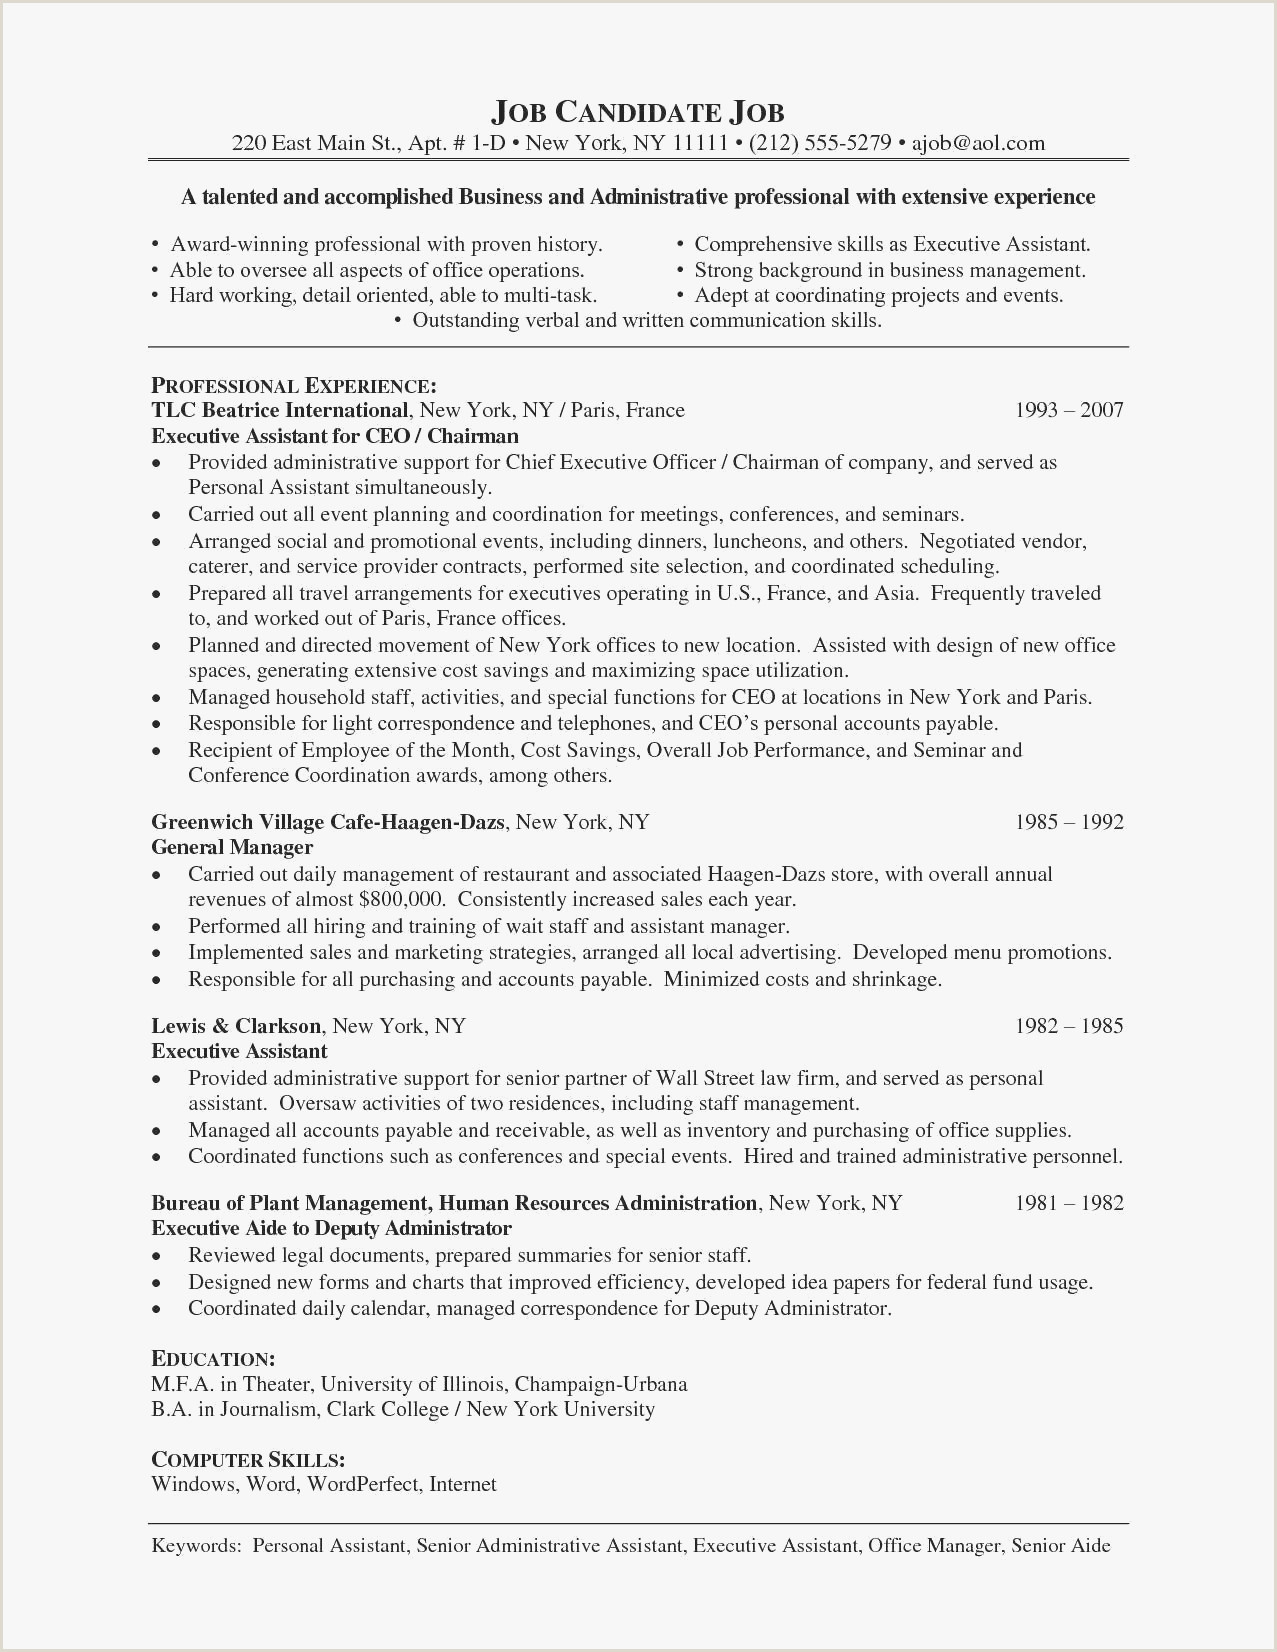 Professional Resume Template Word – Salumguilher